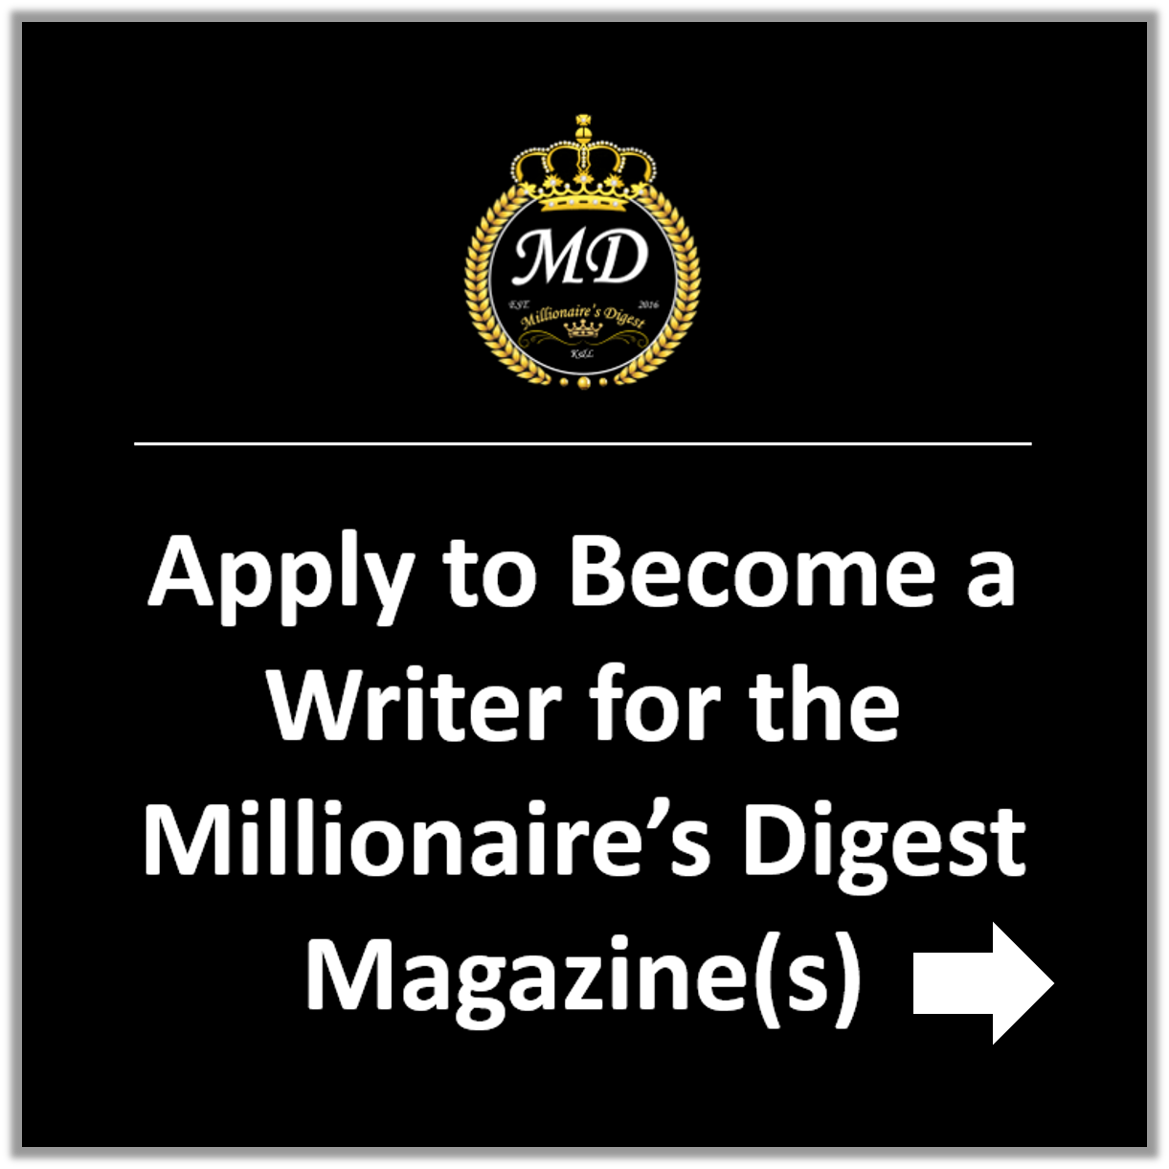 apply_to_become_a_writer_for_the_millionaires_digest_magazine